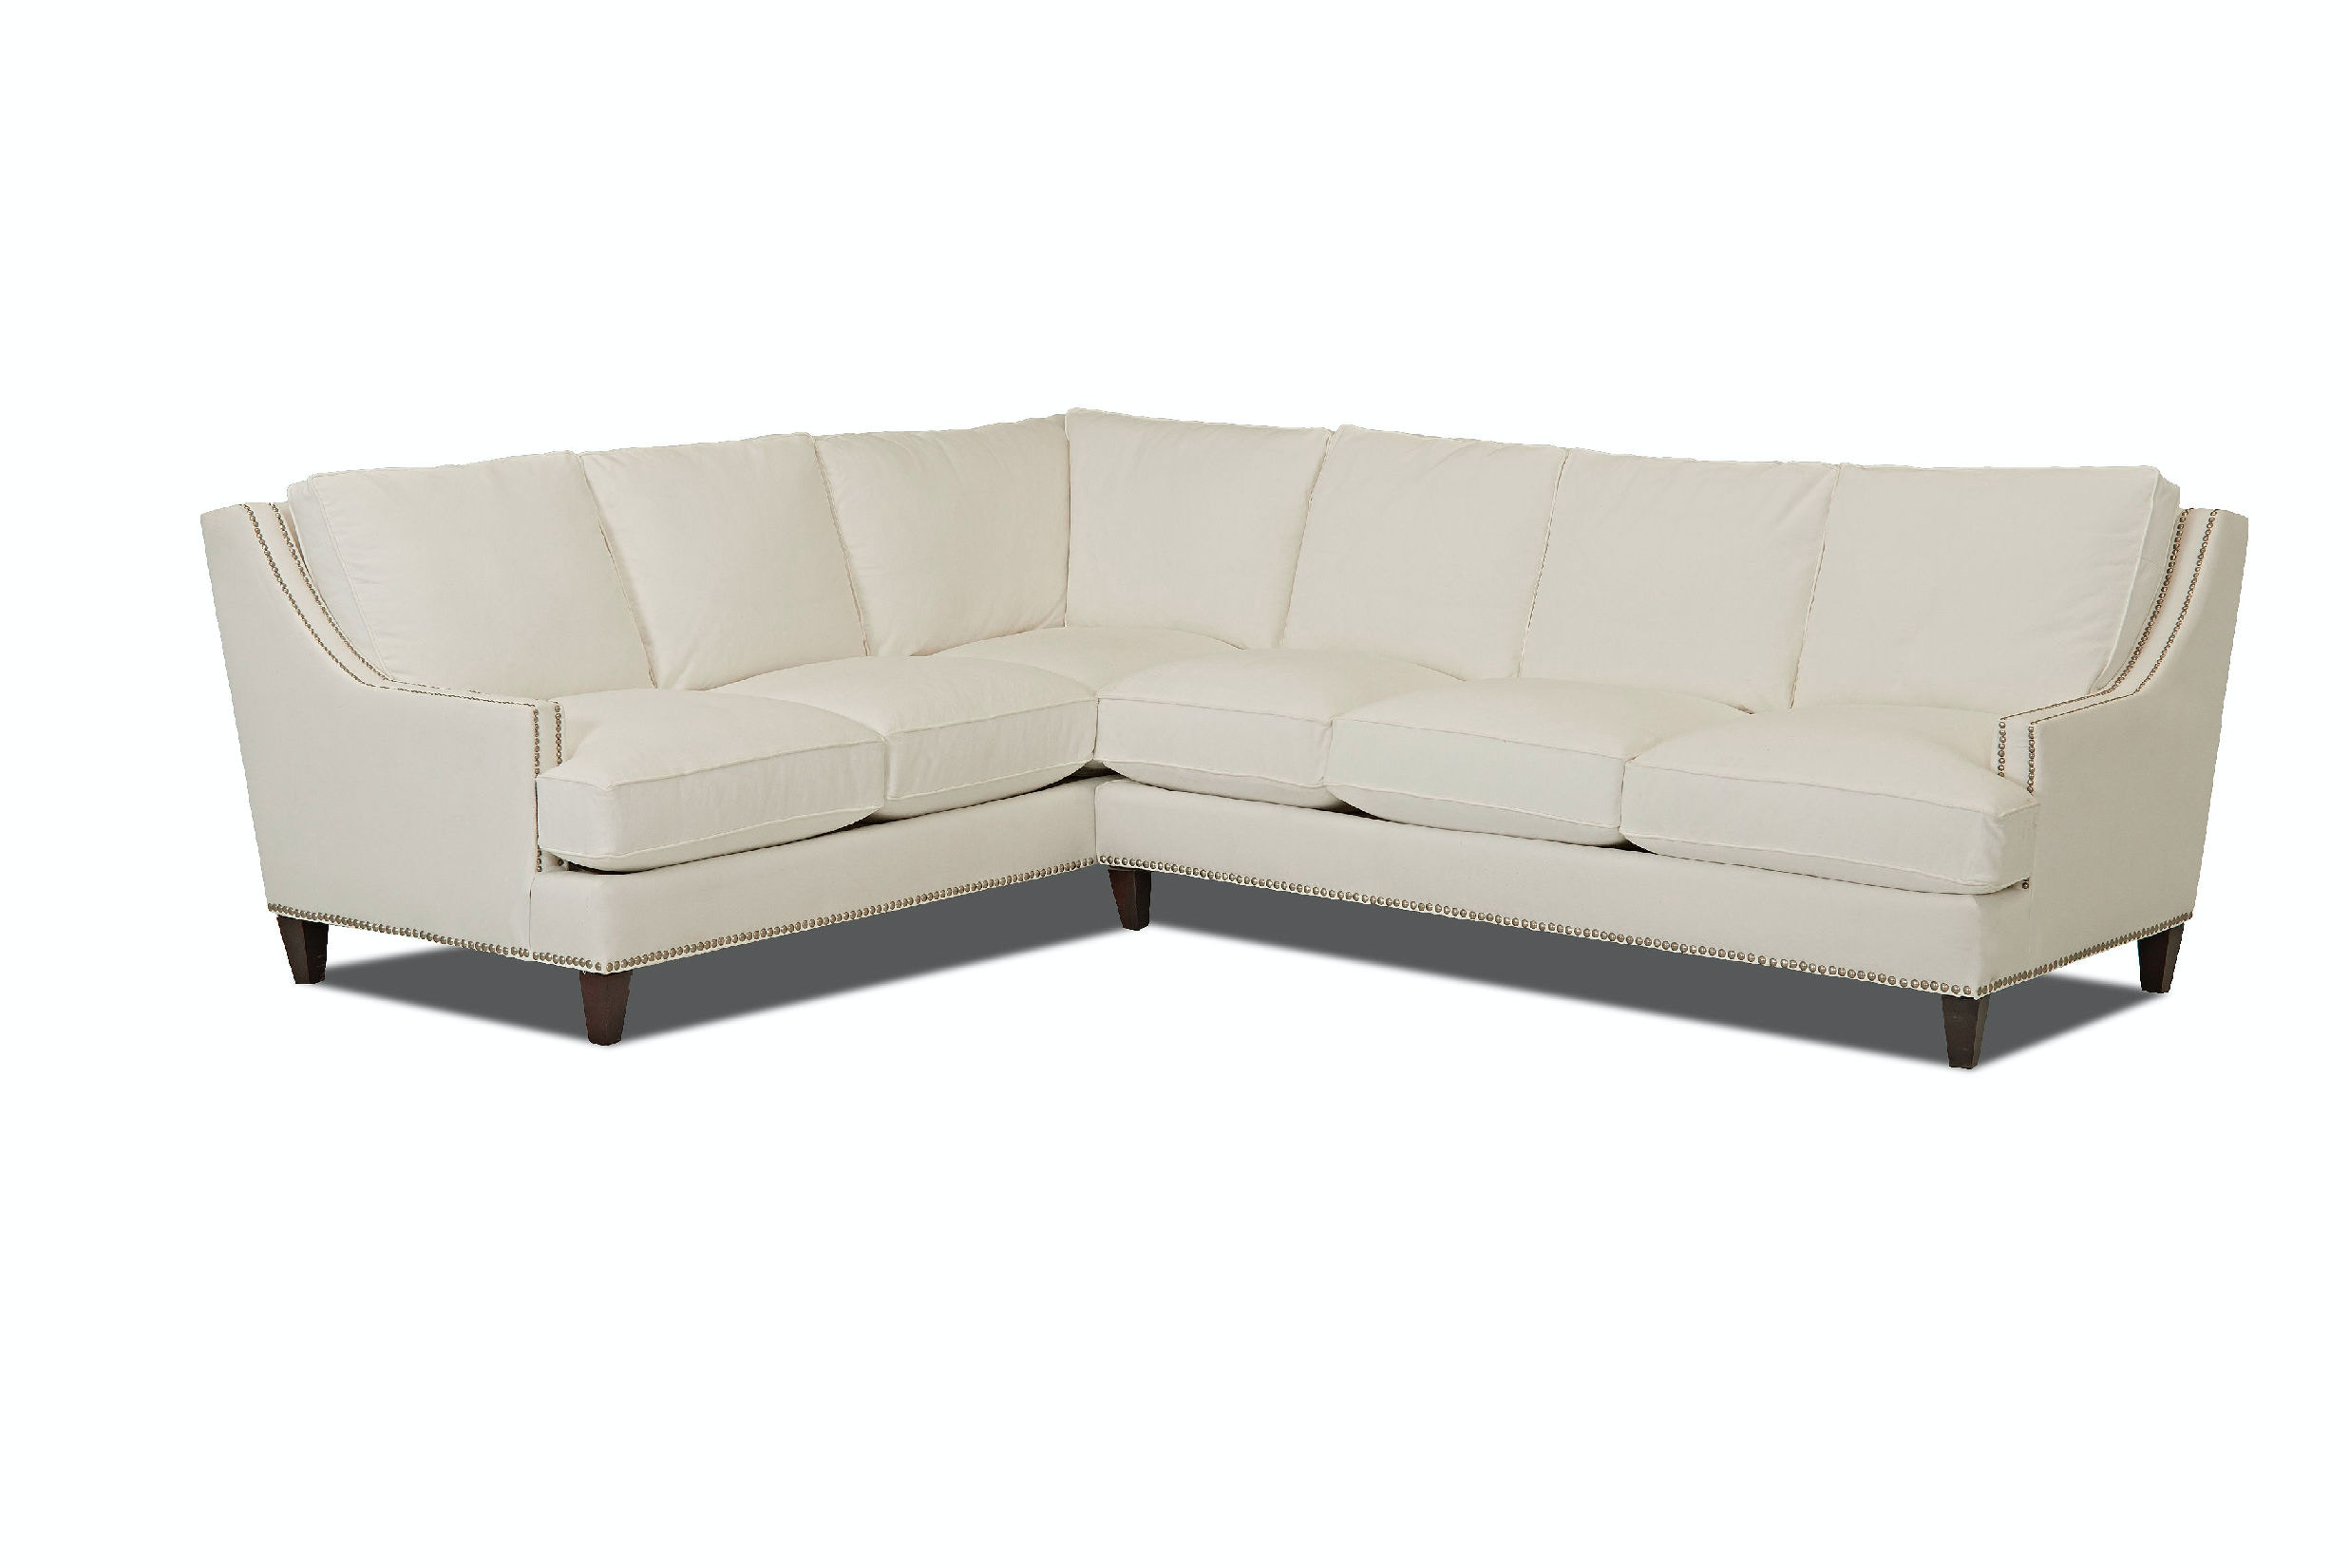 Klaussner Living Room Duchess Sectional D NP FAB SECT